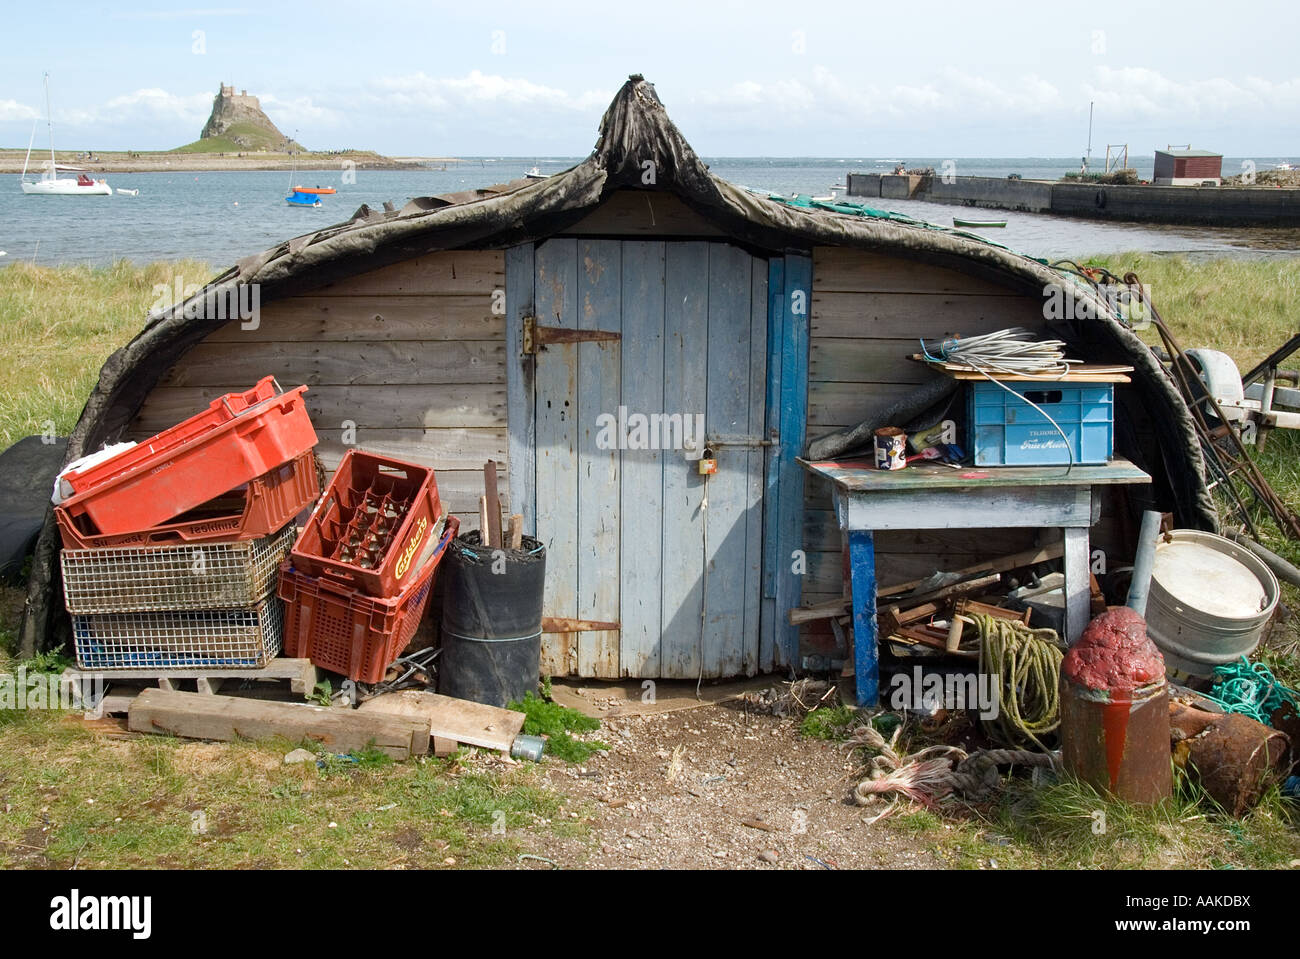 boat-shed-and-fishing-paraphernalia-on-t